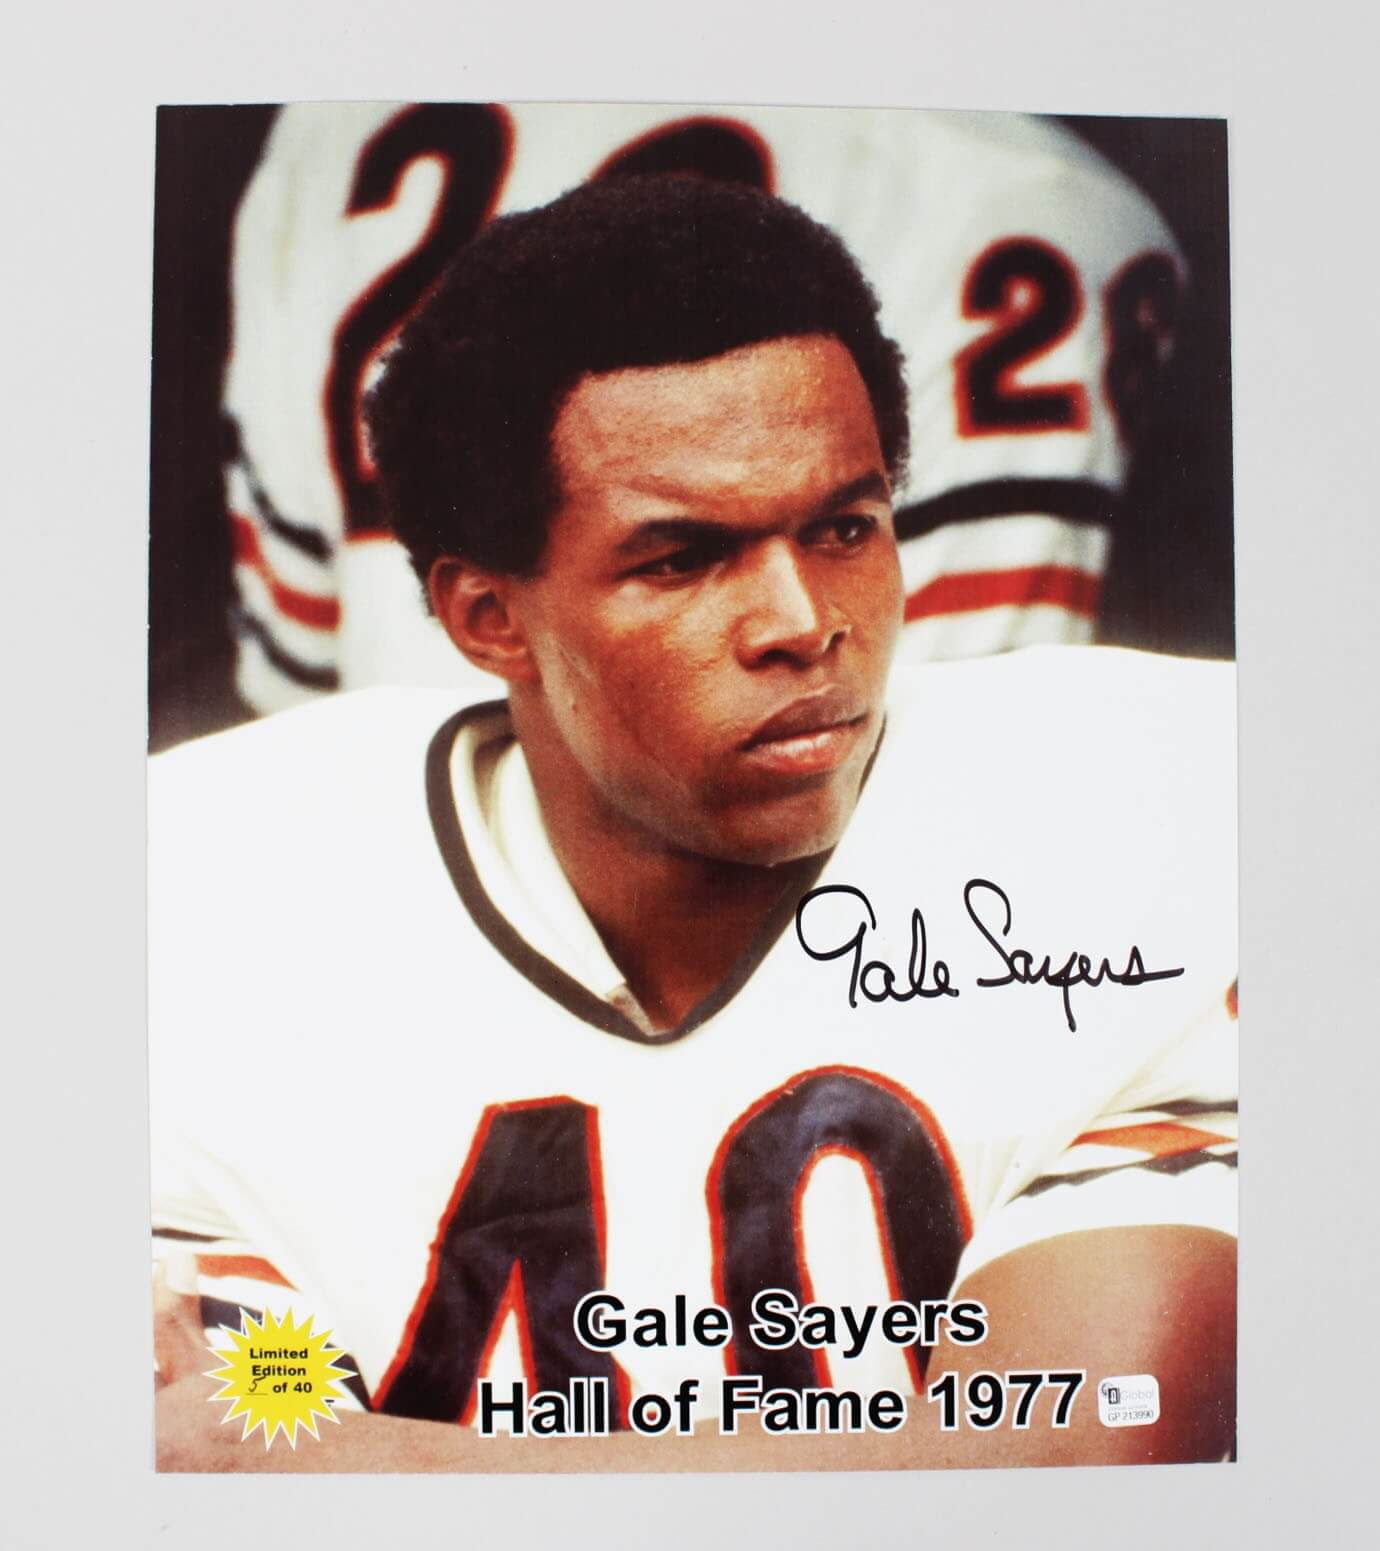 Bears Gale Sayers Signed 11×14 Color Photo Hall of Fame 1977 LE 5 out of 4060944_01